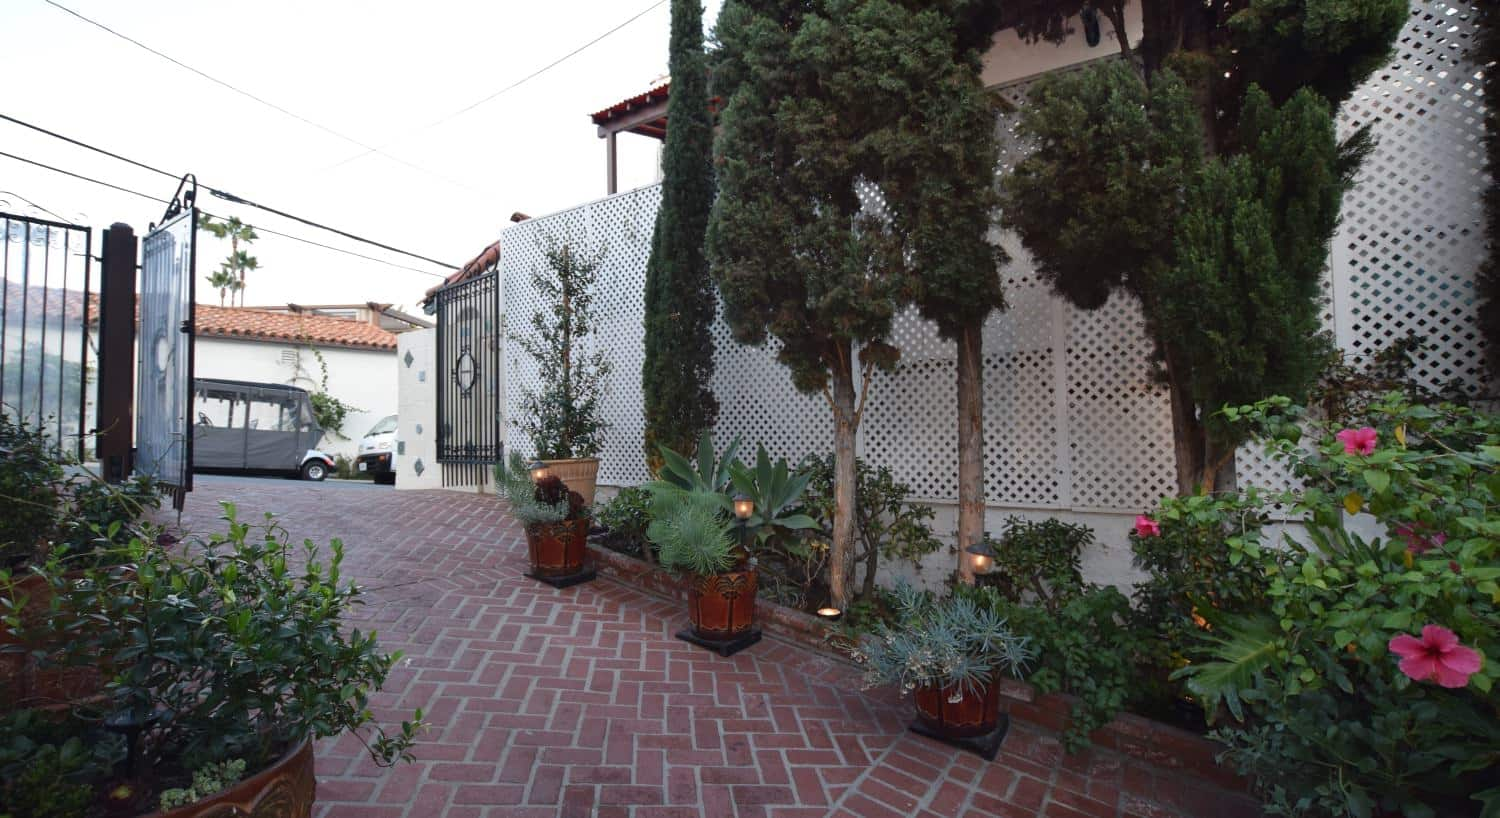 Red-brick driveway lined with skinny trees, plants and bushes